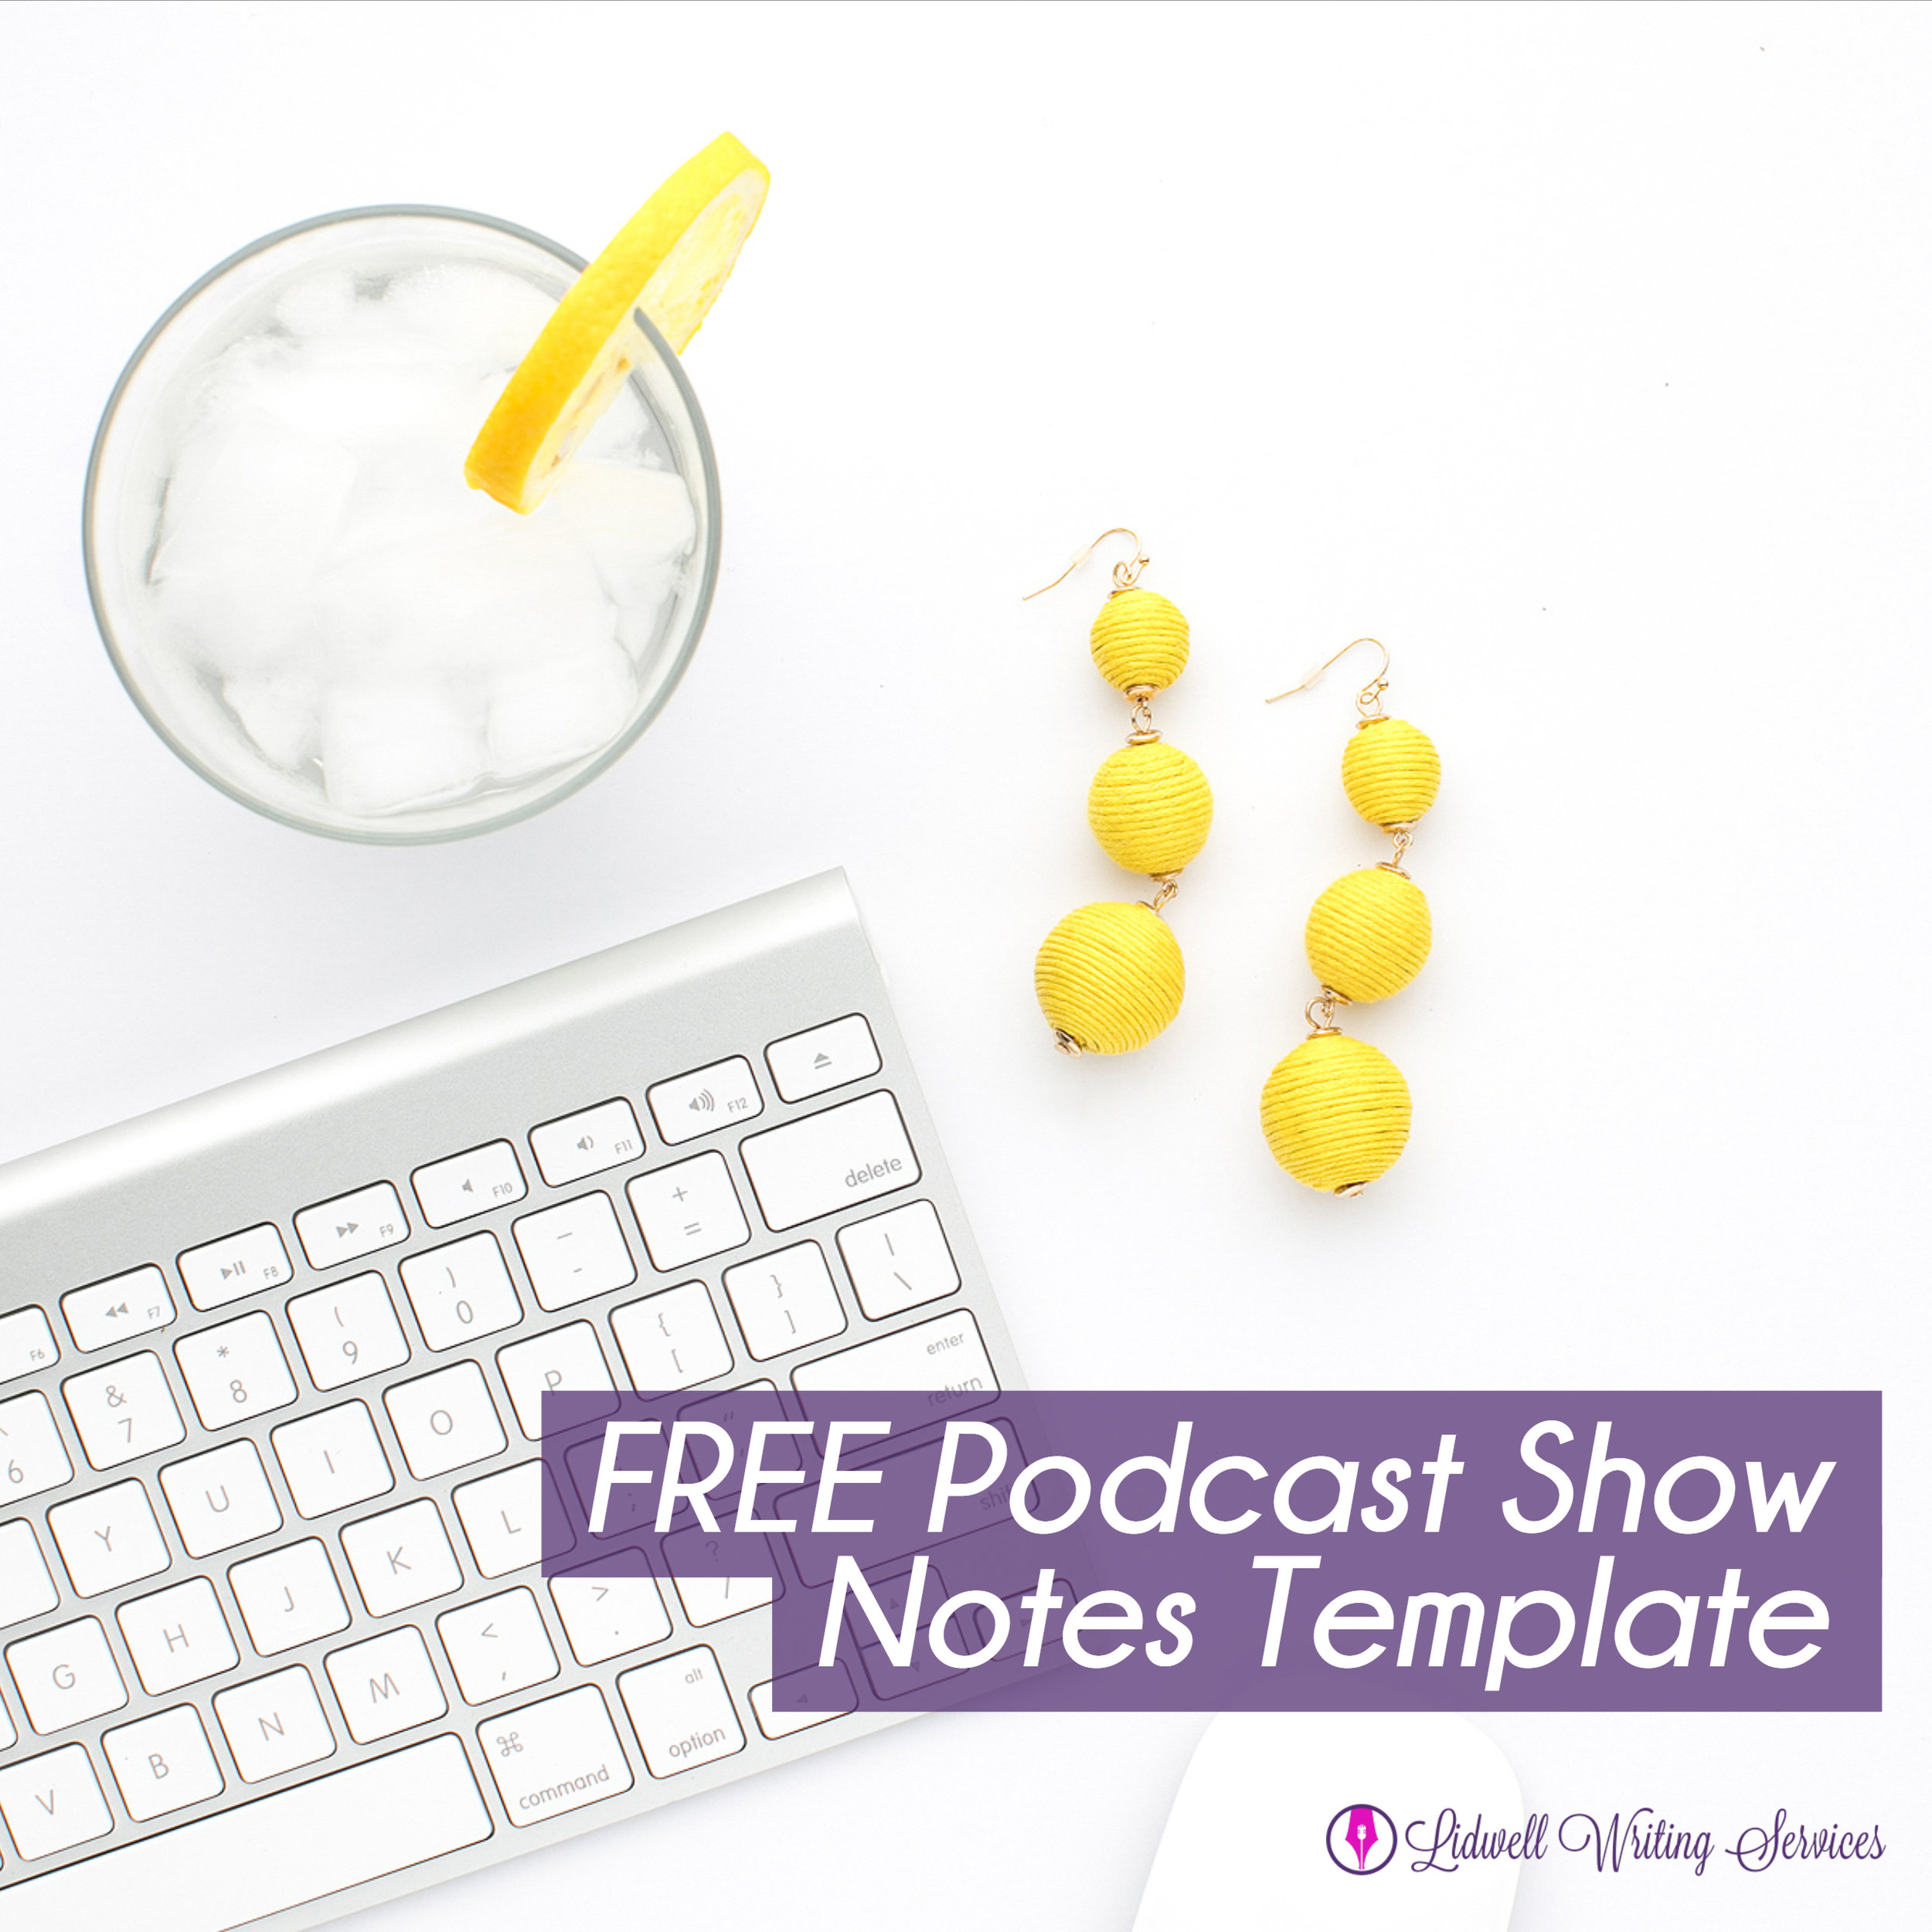 FREE Podcast Show Notes Template.jpg